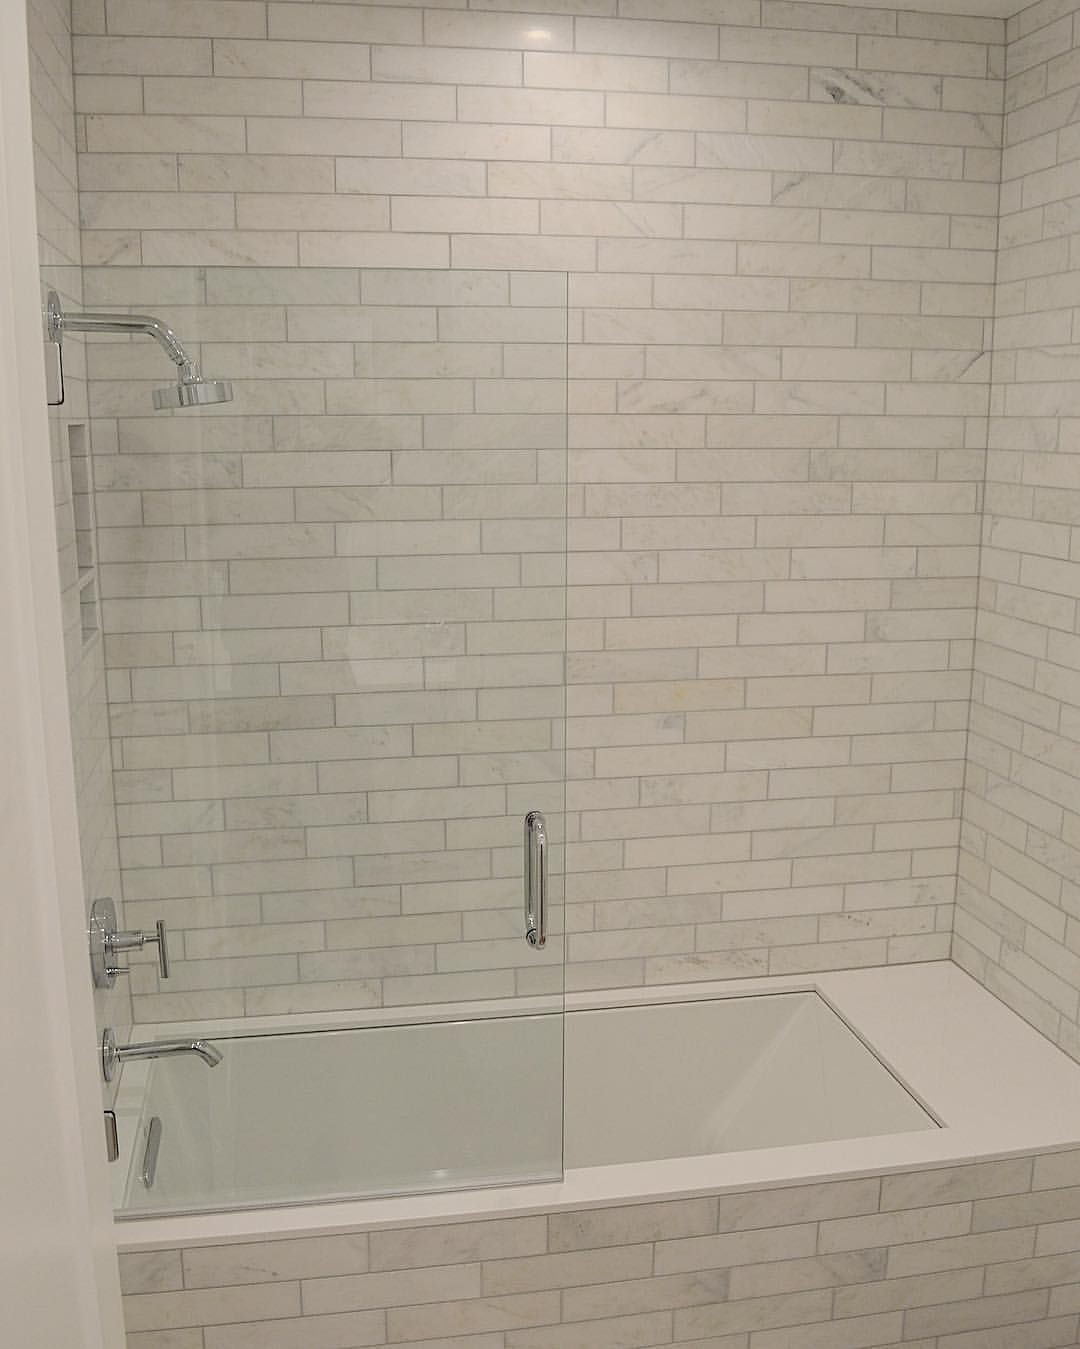 Marbel Tile Tub Surround With Gray Grout Tile Tub Surround